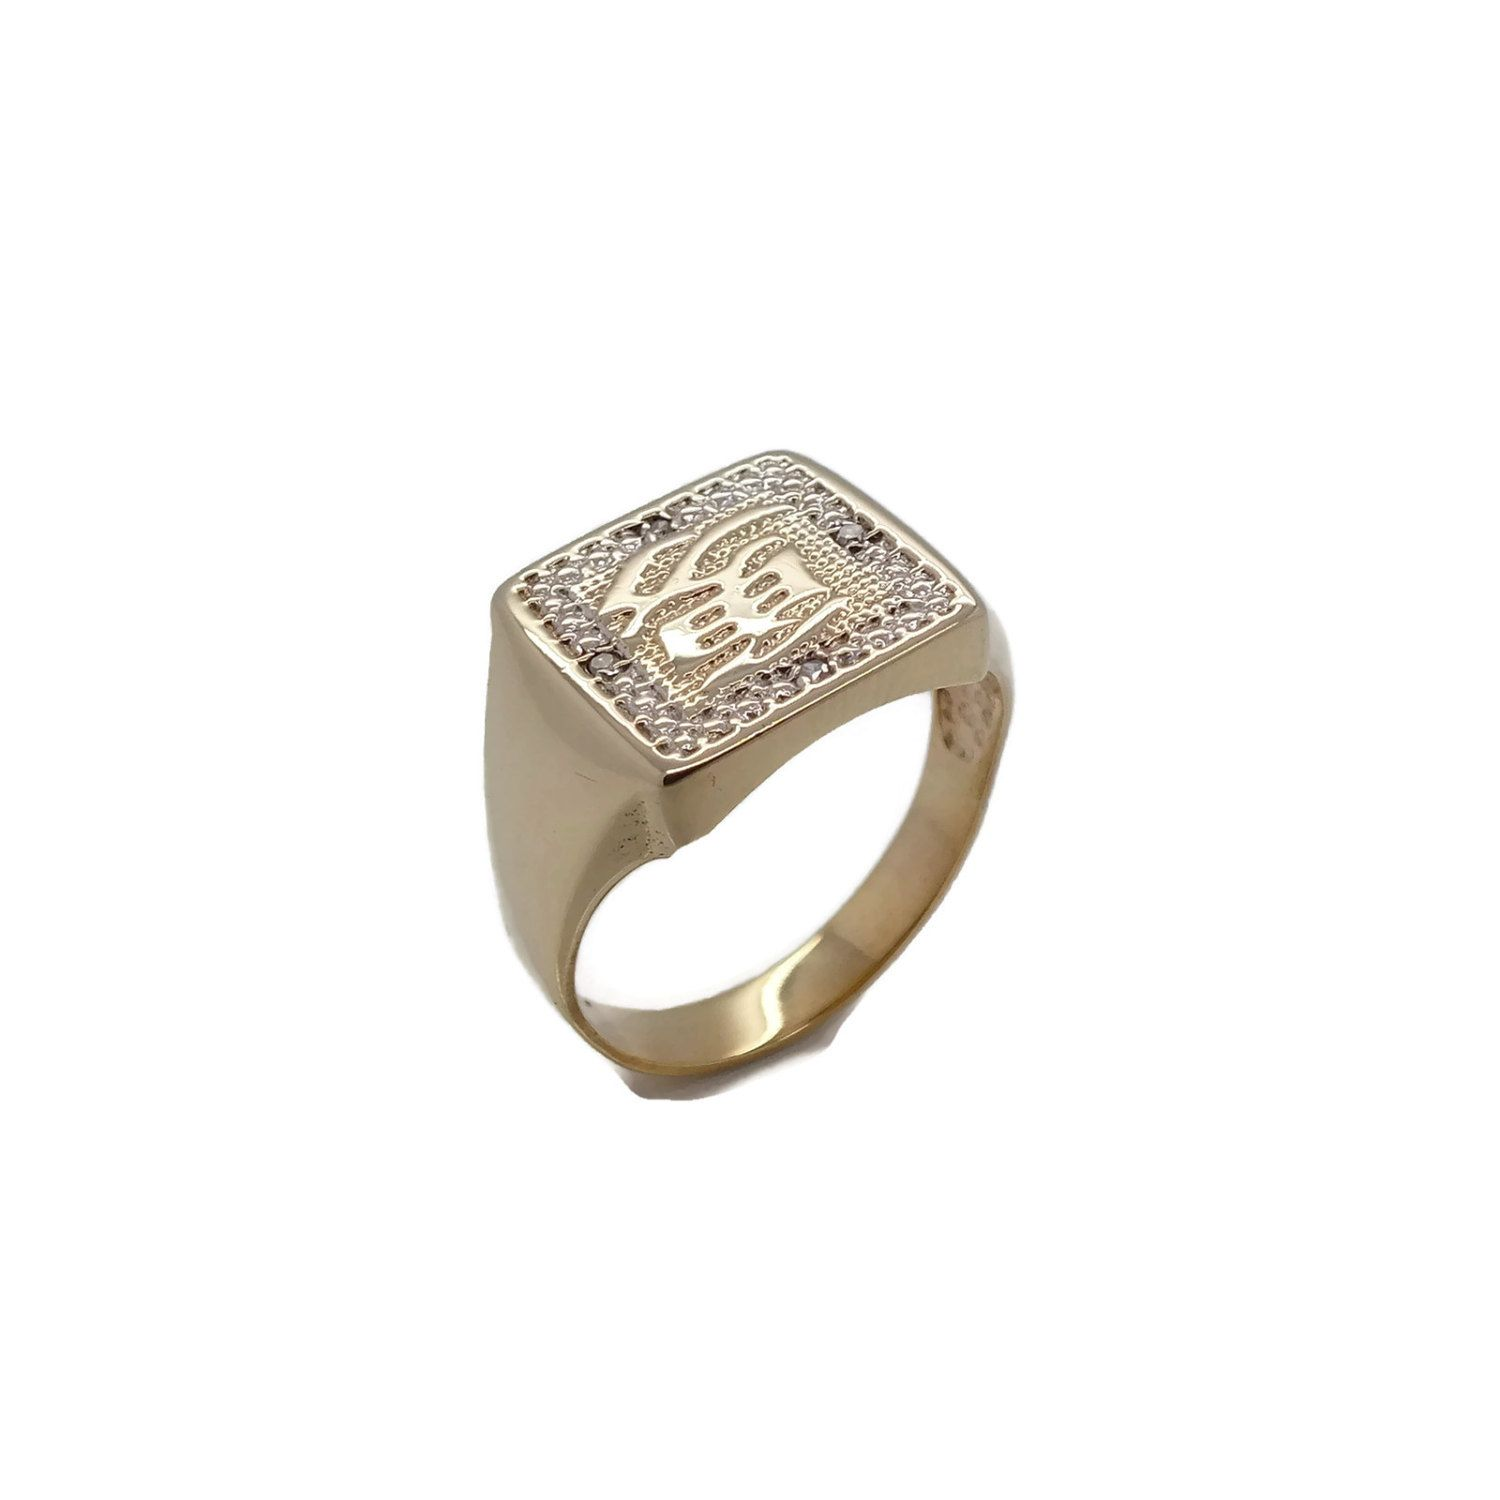 hallmarked fully asp ring mens stunning highly p s jewellery cast stunningfully pyramid polished grams in men for gold